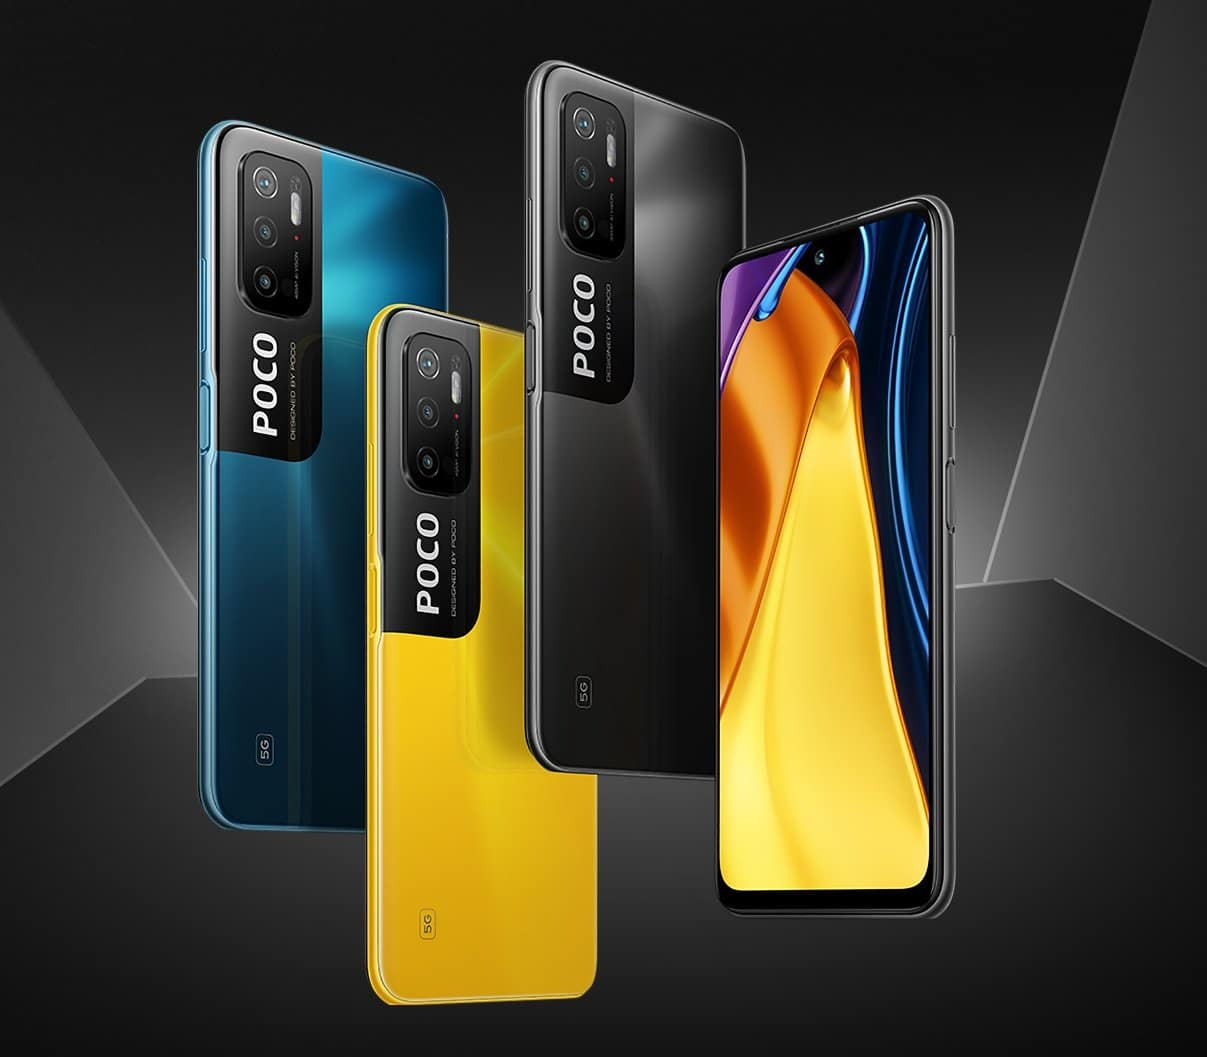 poco-m3-pro-france-smartphone-5g-abordable